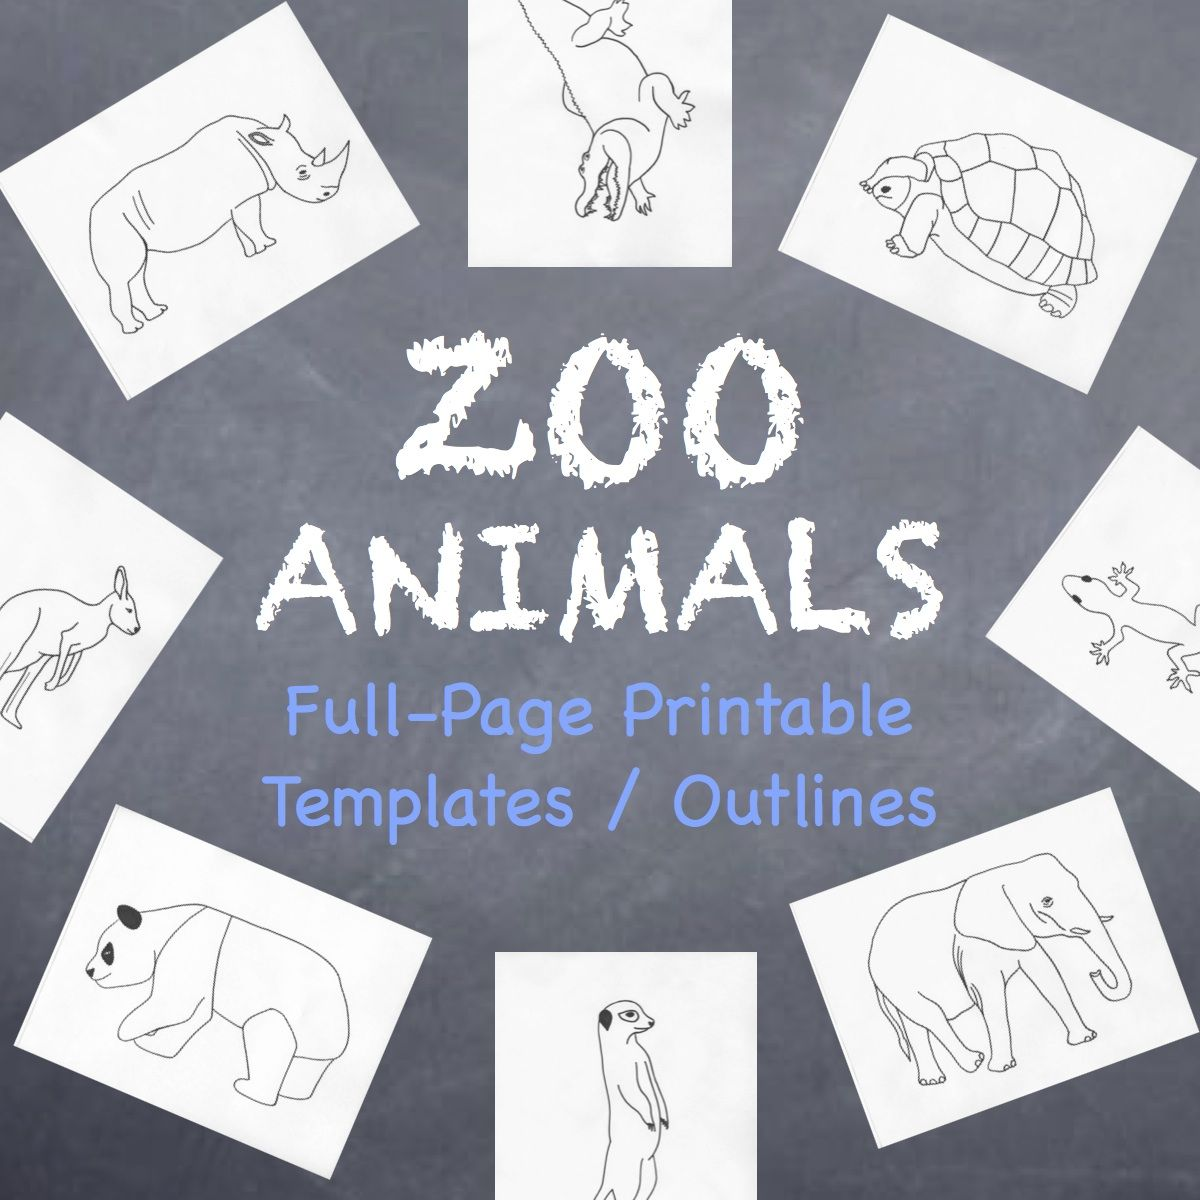 Zoo Animals Printable Full Page Outlines Templates For All Grades And Subjects